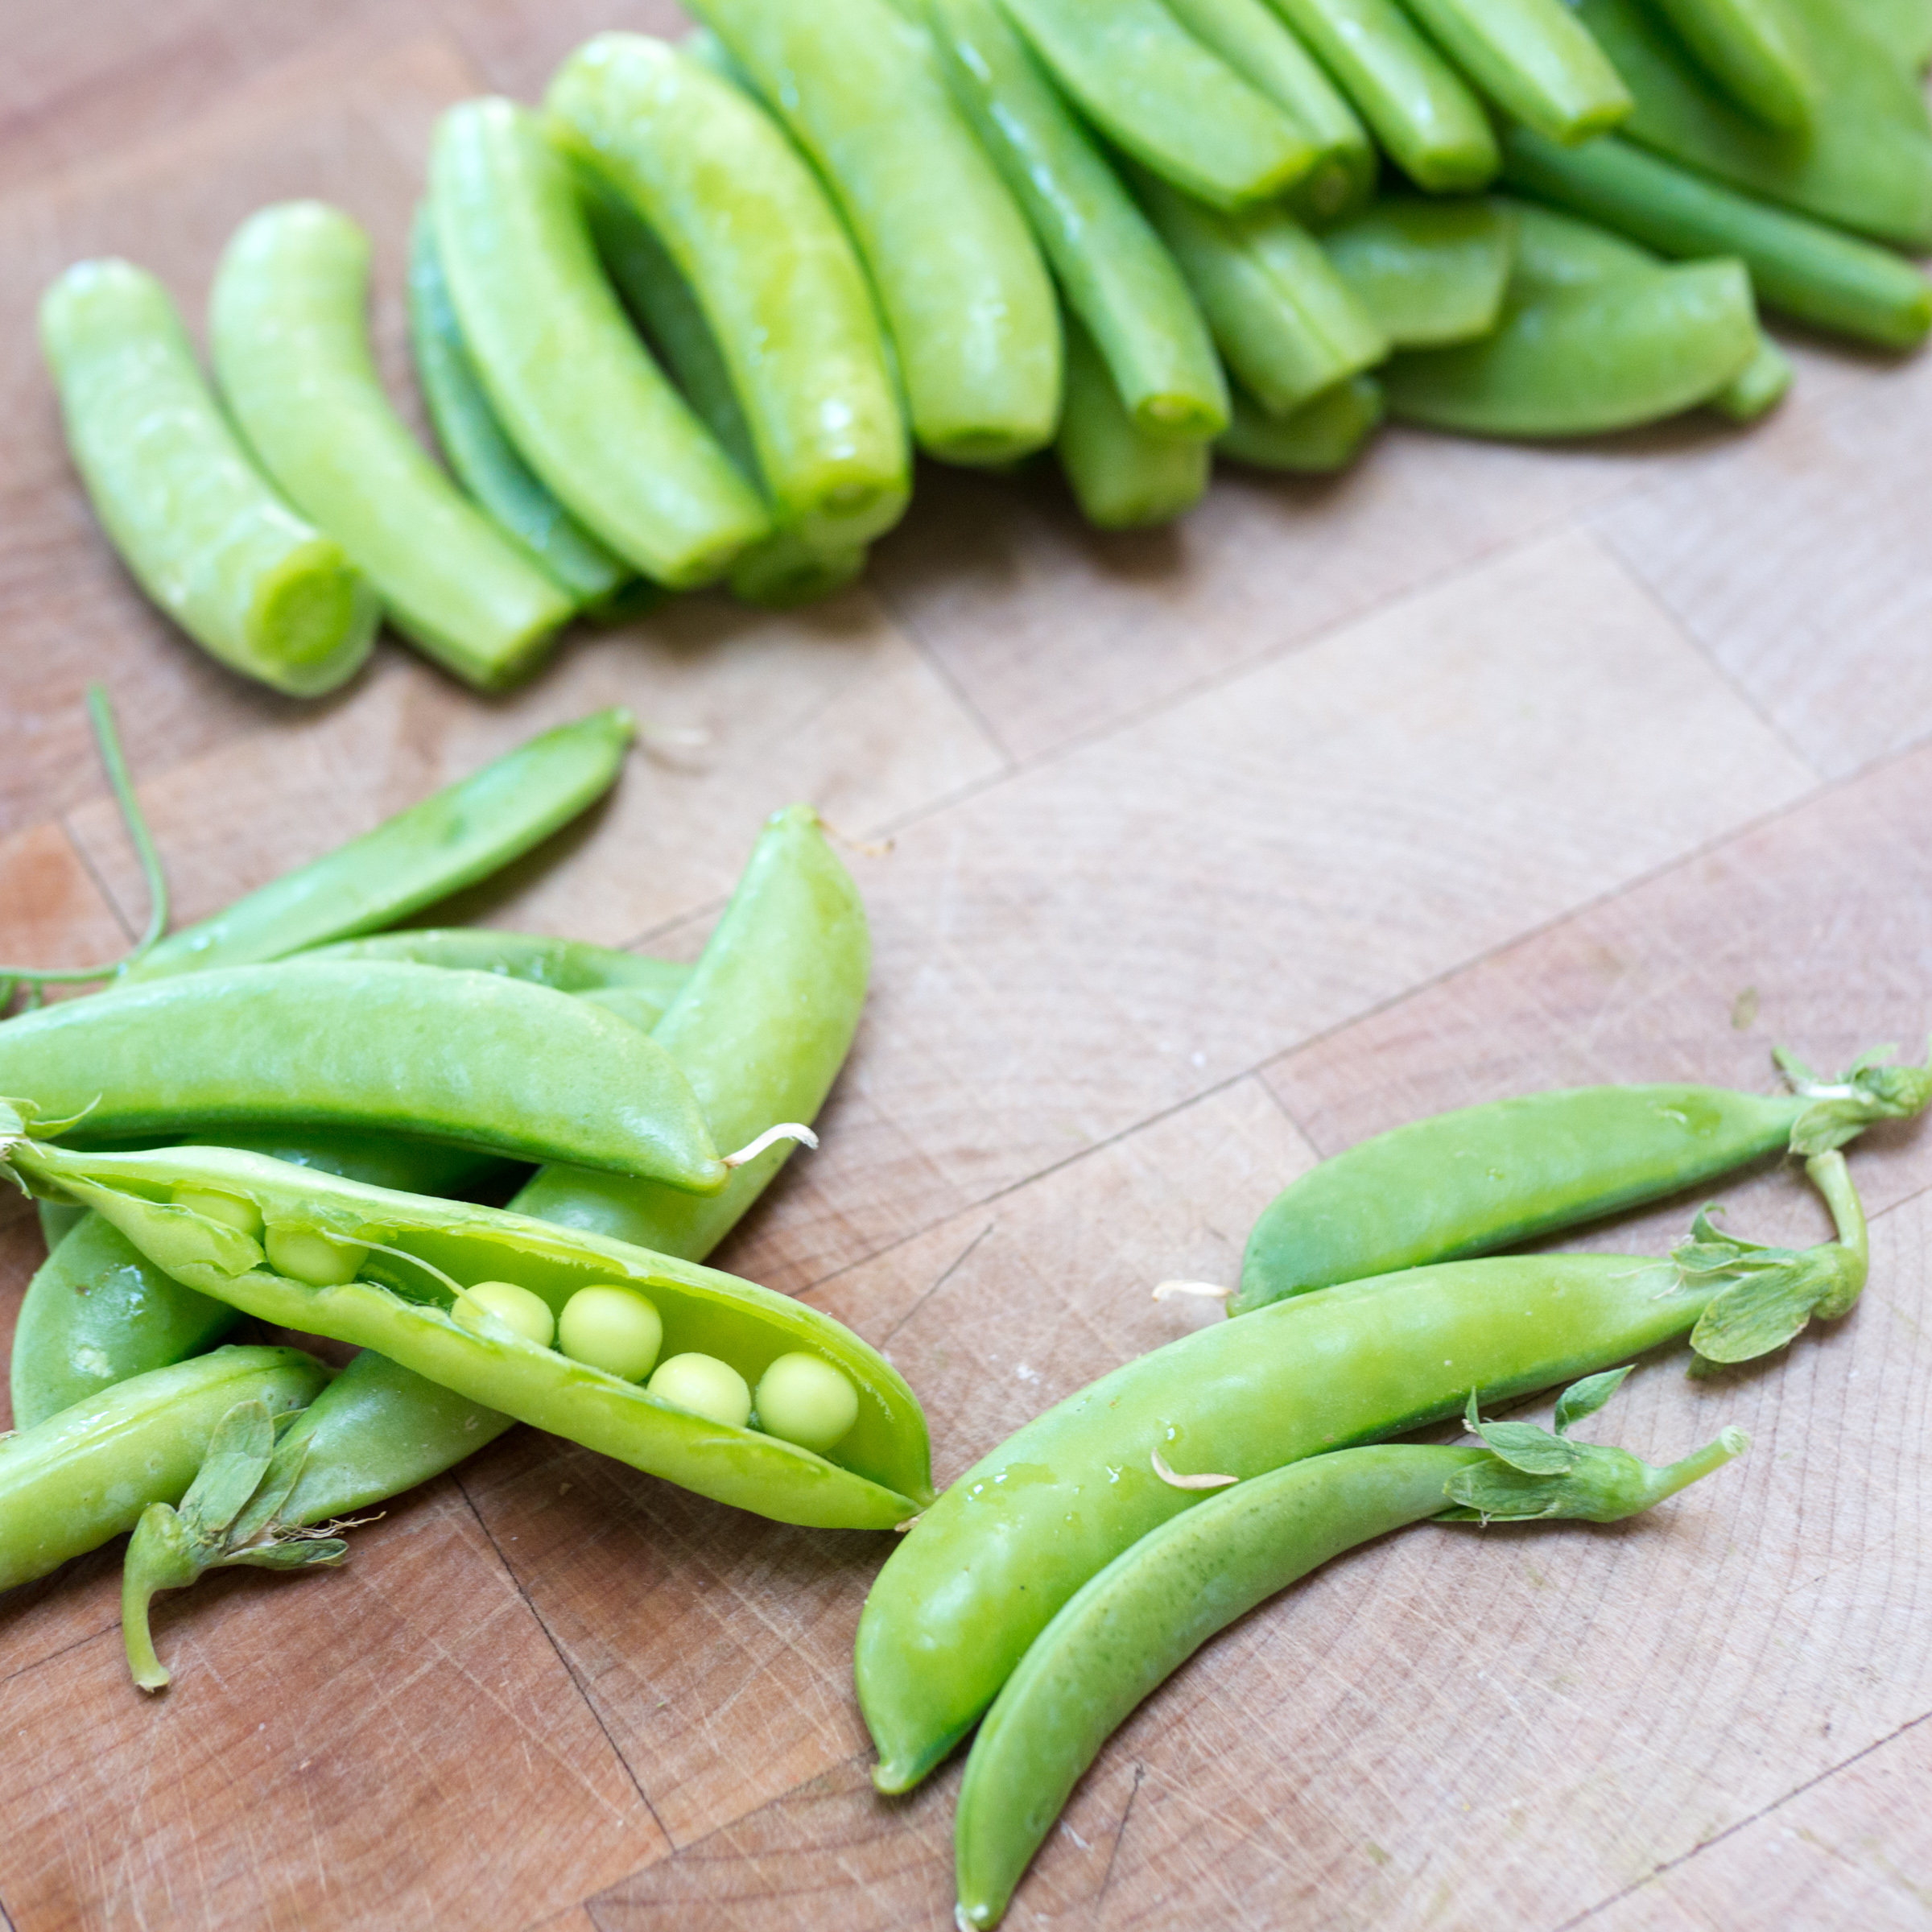 How To Cook Baby Corn And Sugar Snap Peas